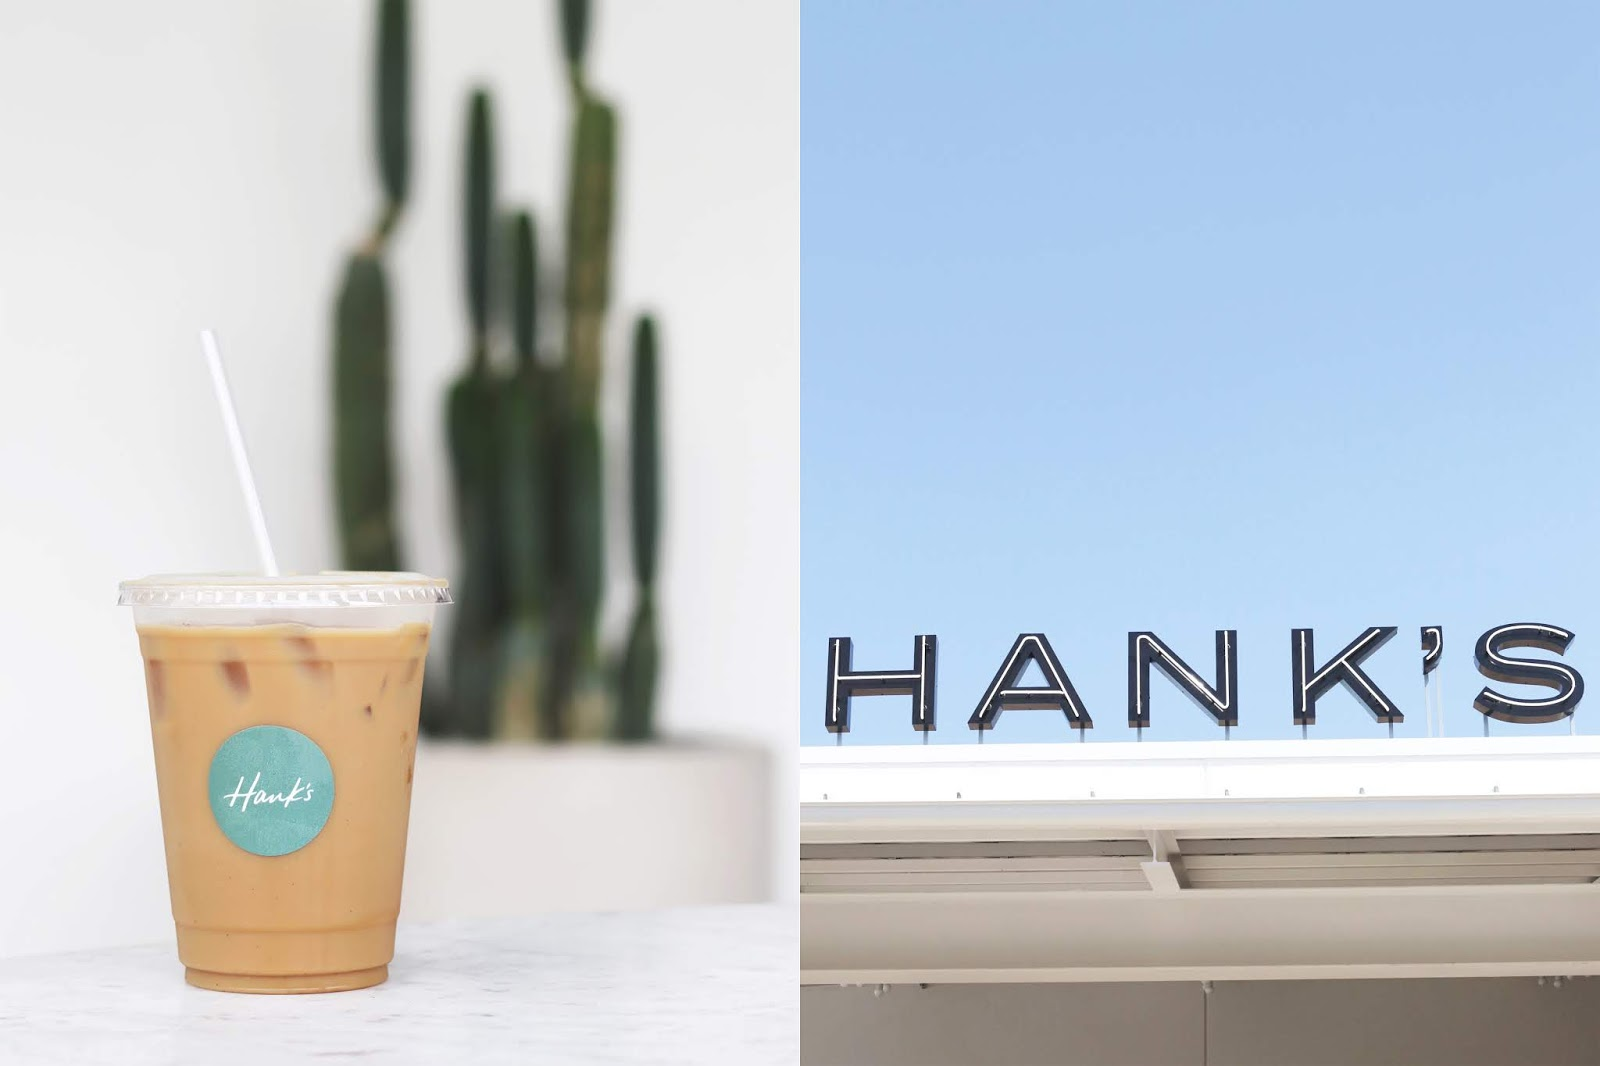 Hank's Austin, Iced Coffee, Cozy Coffee Shop, Coffee Shops Vibe